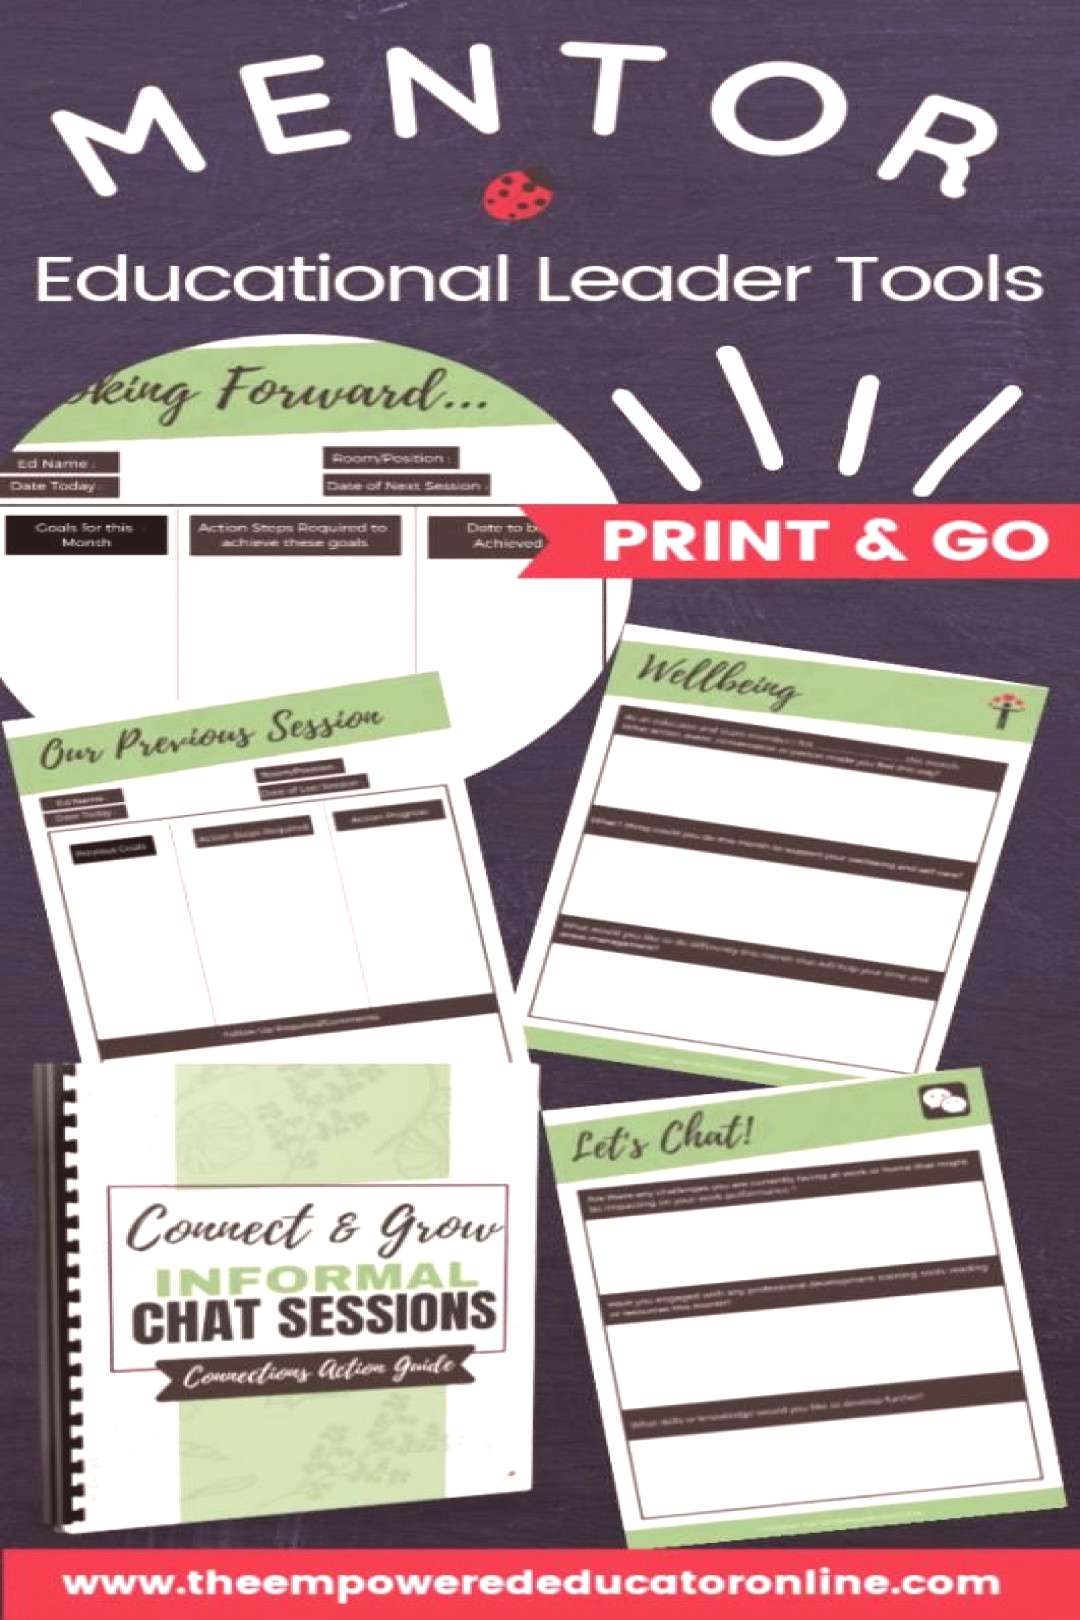 This guide gives early childhood Educational Leaders directors and coordinators the prompts templat